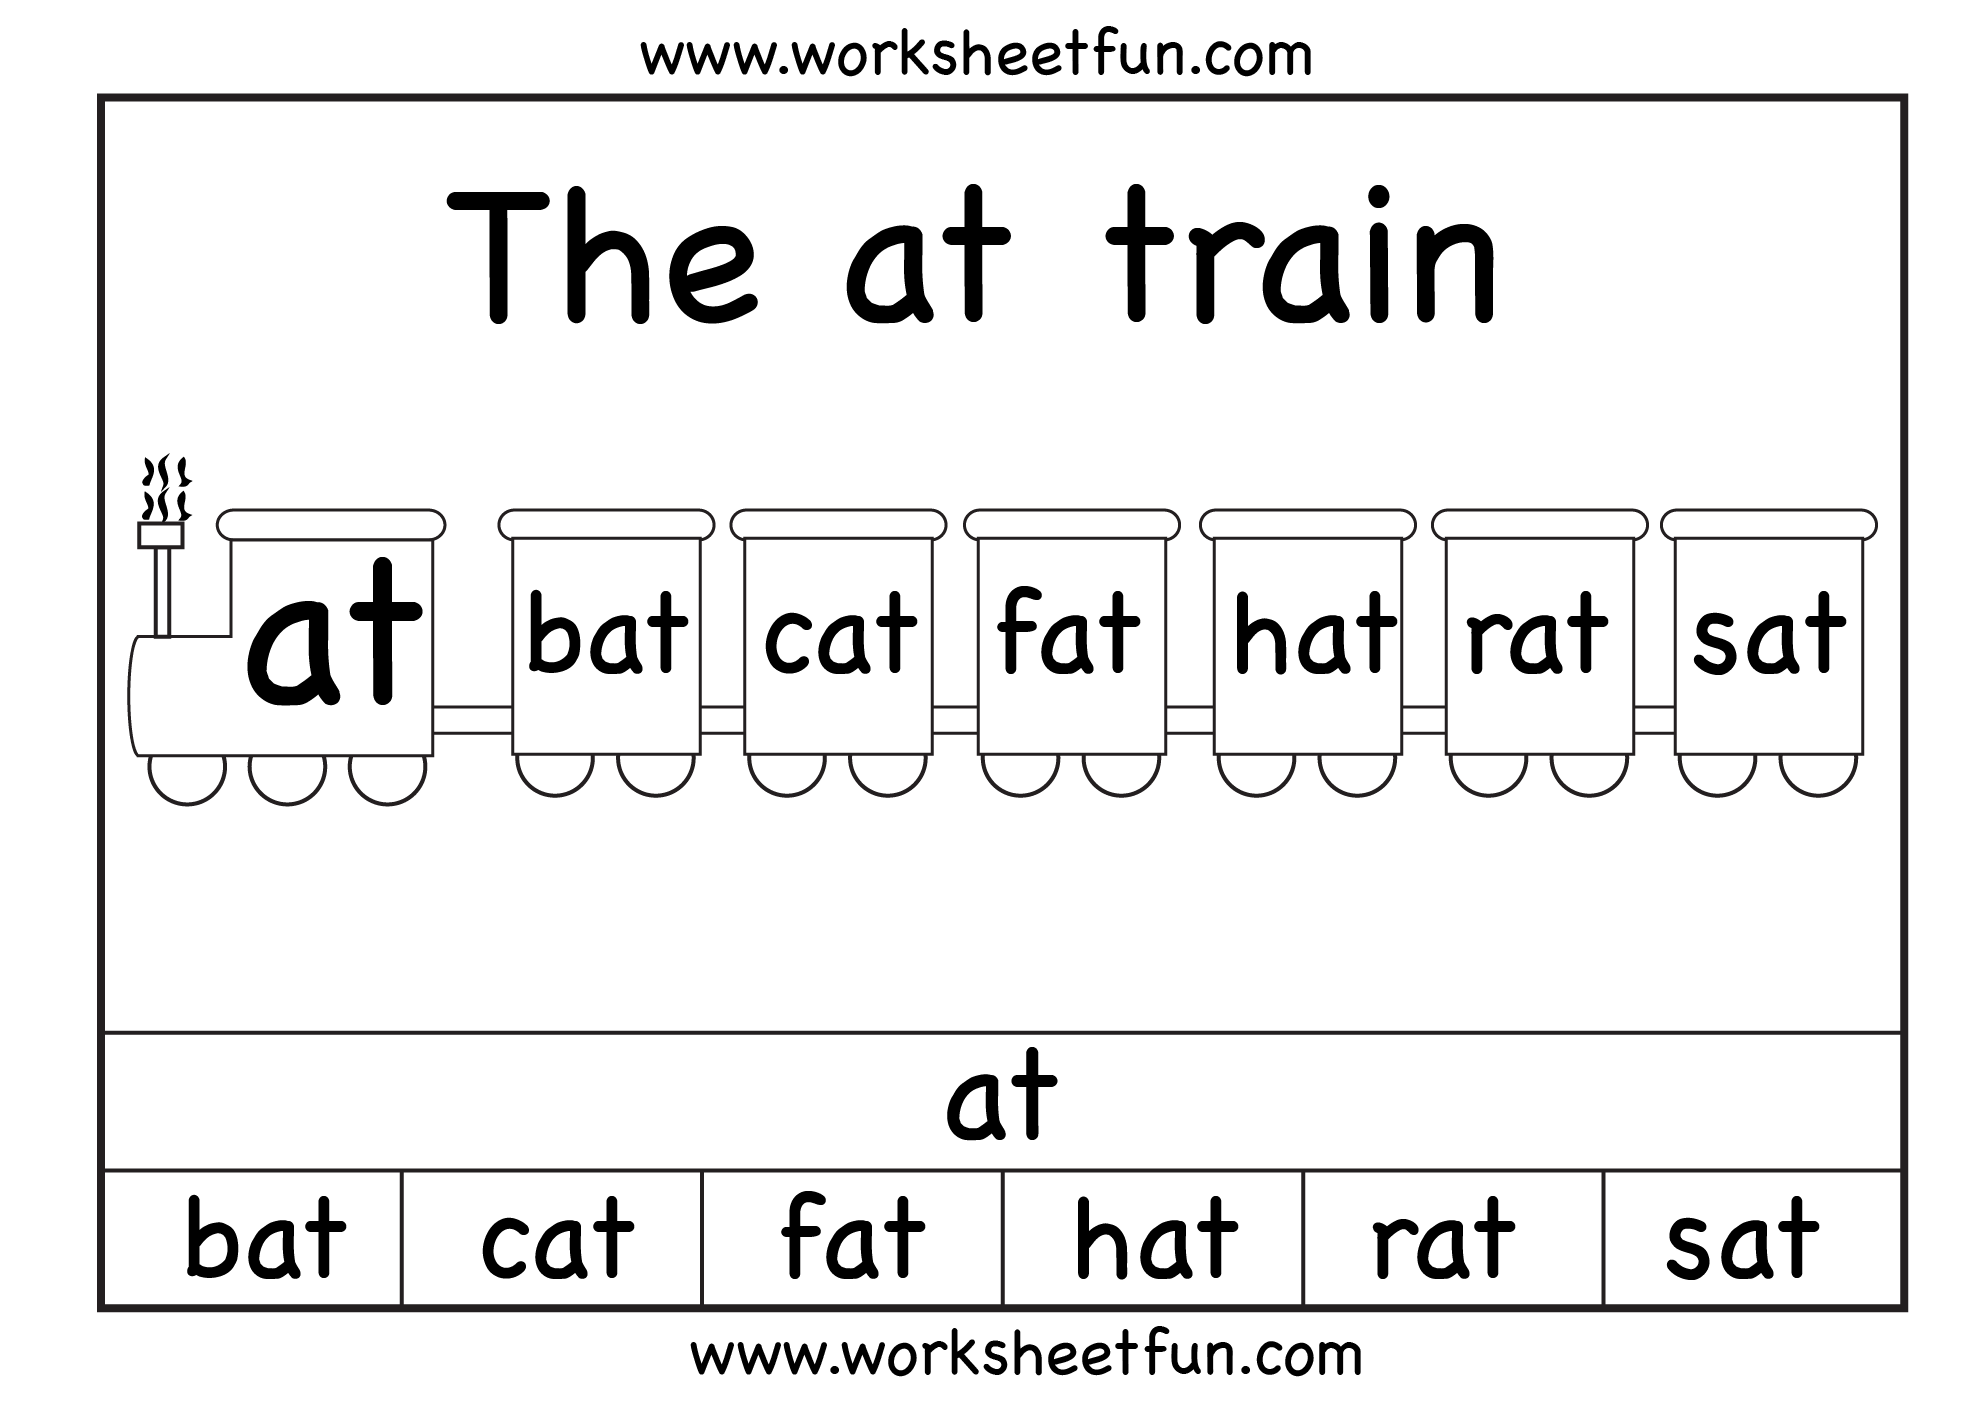 Worksheets Word Family Worksheets Free 1000 images about at ate words on pinterest word families family and work